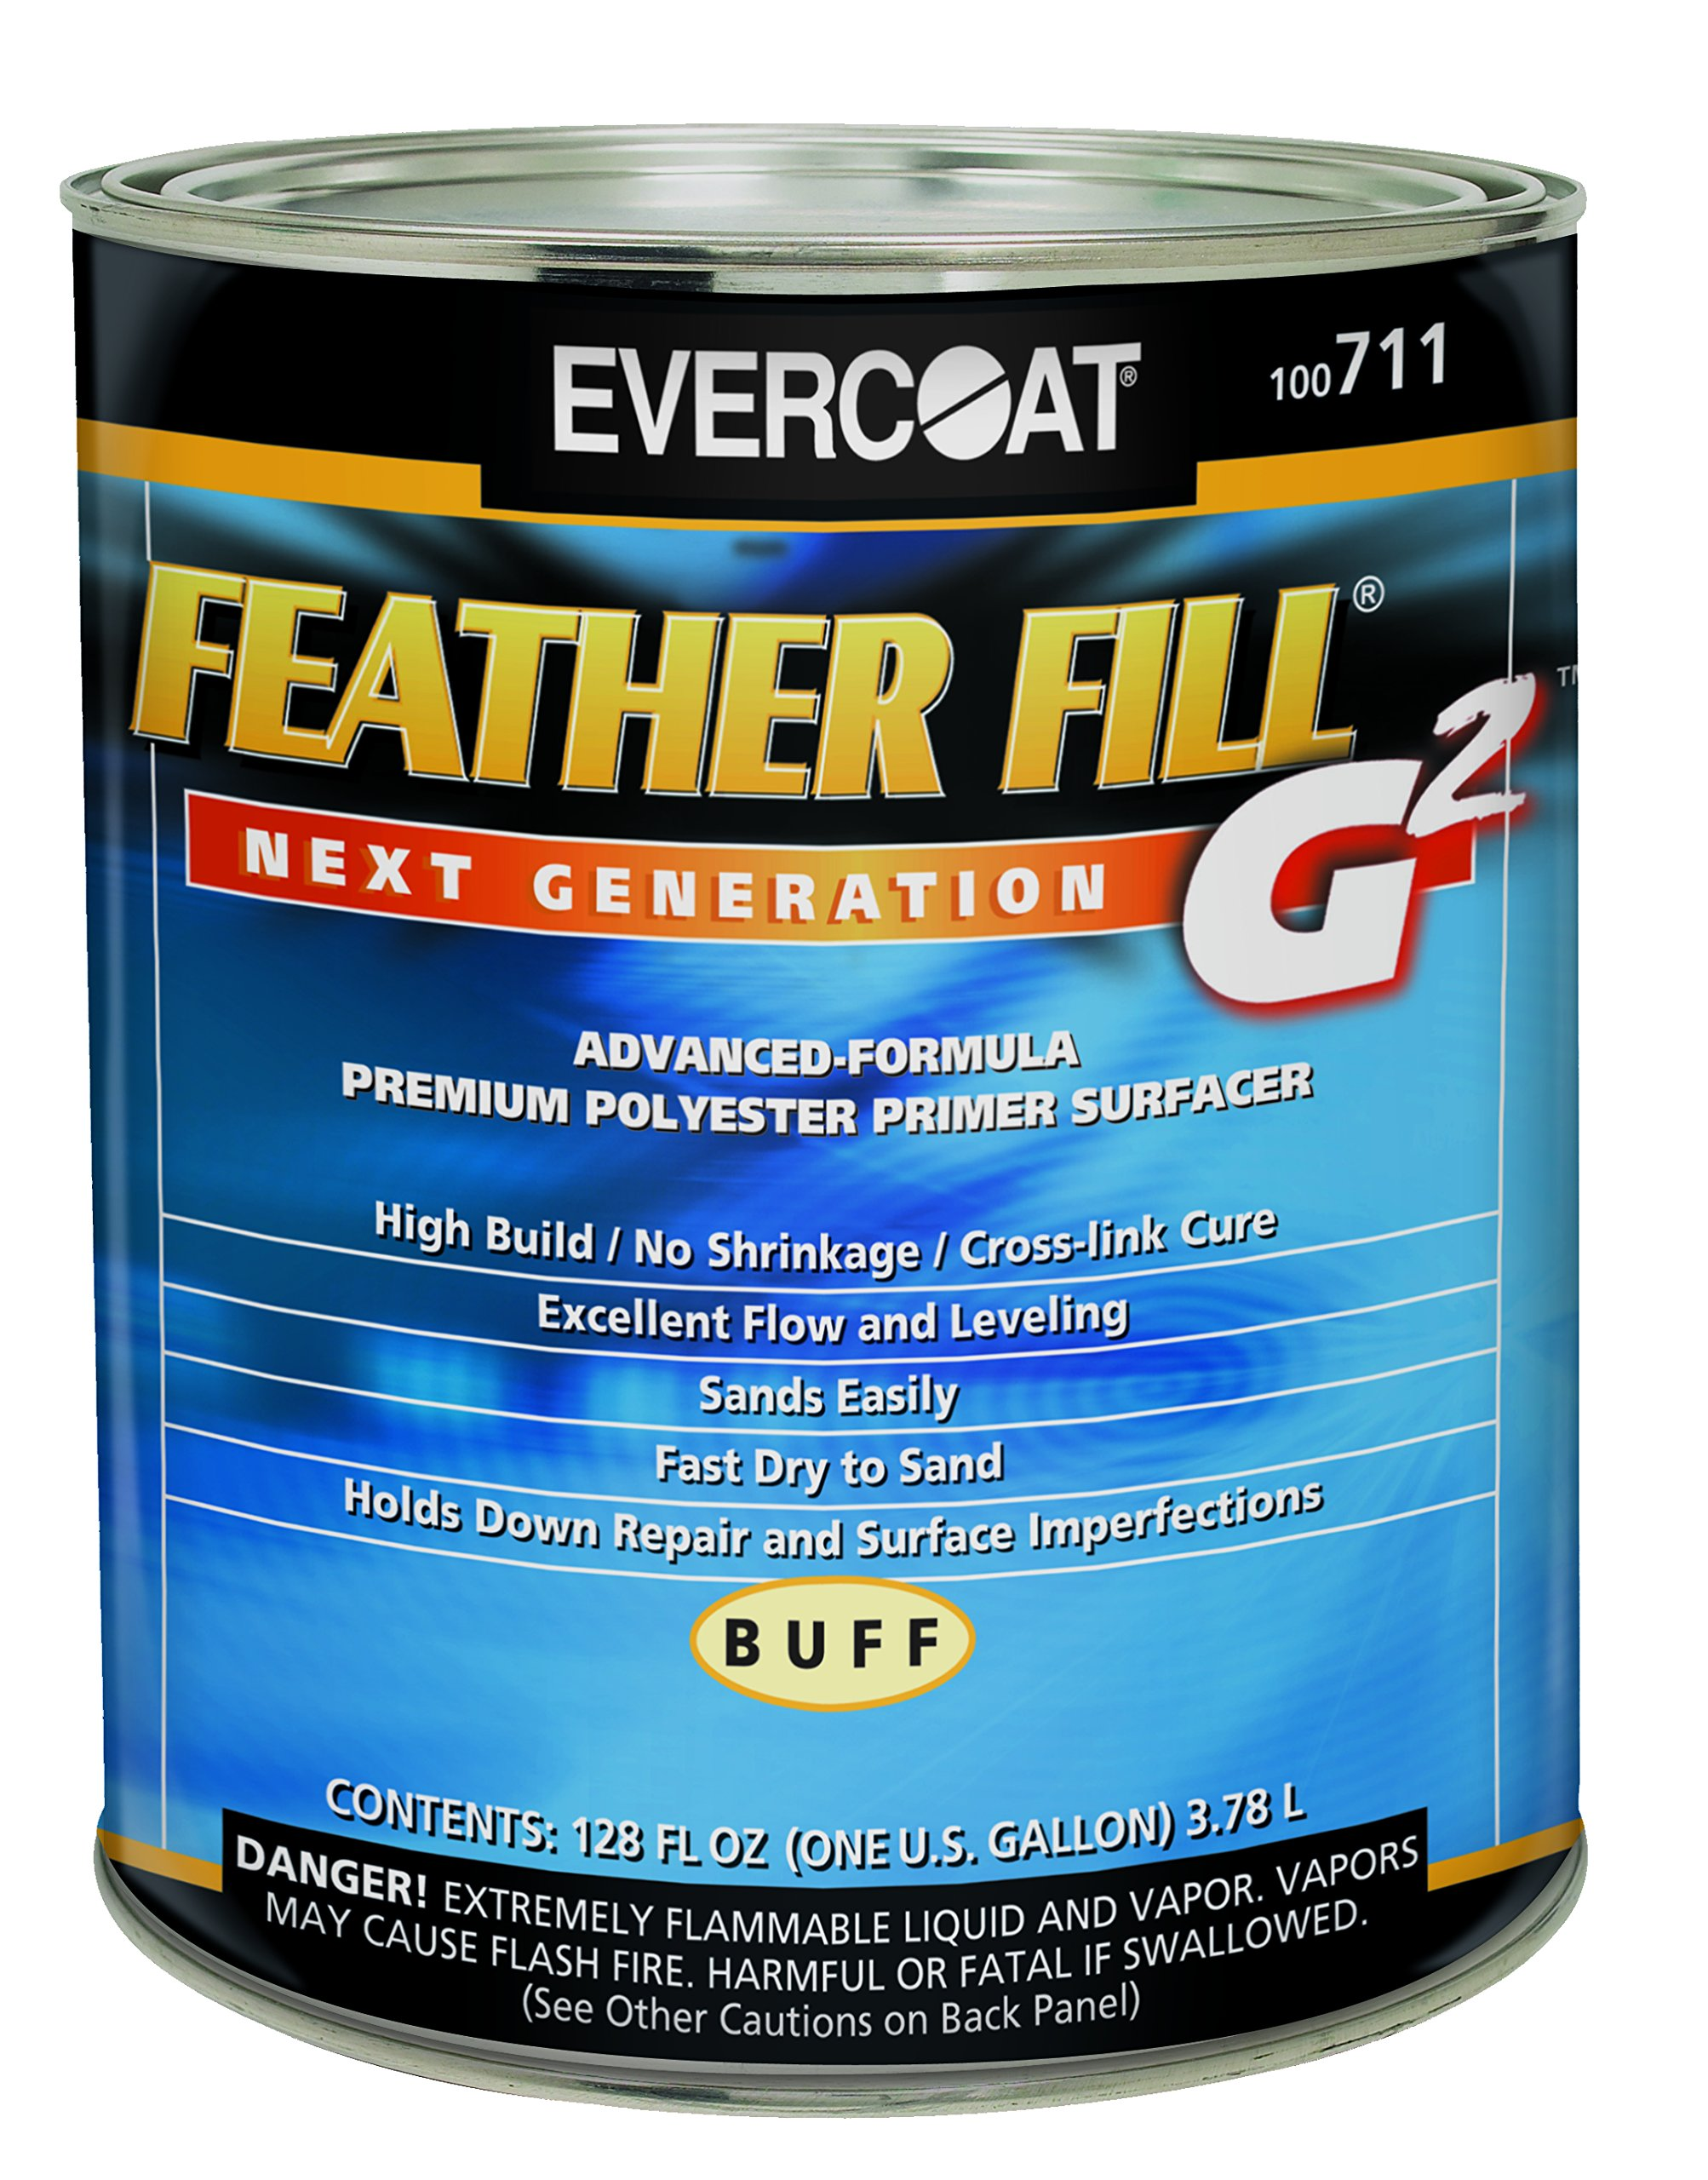 Evercoat 711 Feather Fill G2 Buff Polyester Primer Surfacer - 1 Gallon by Evercoat